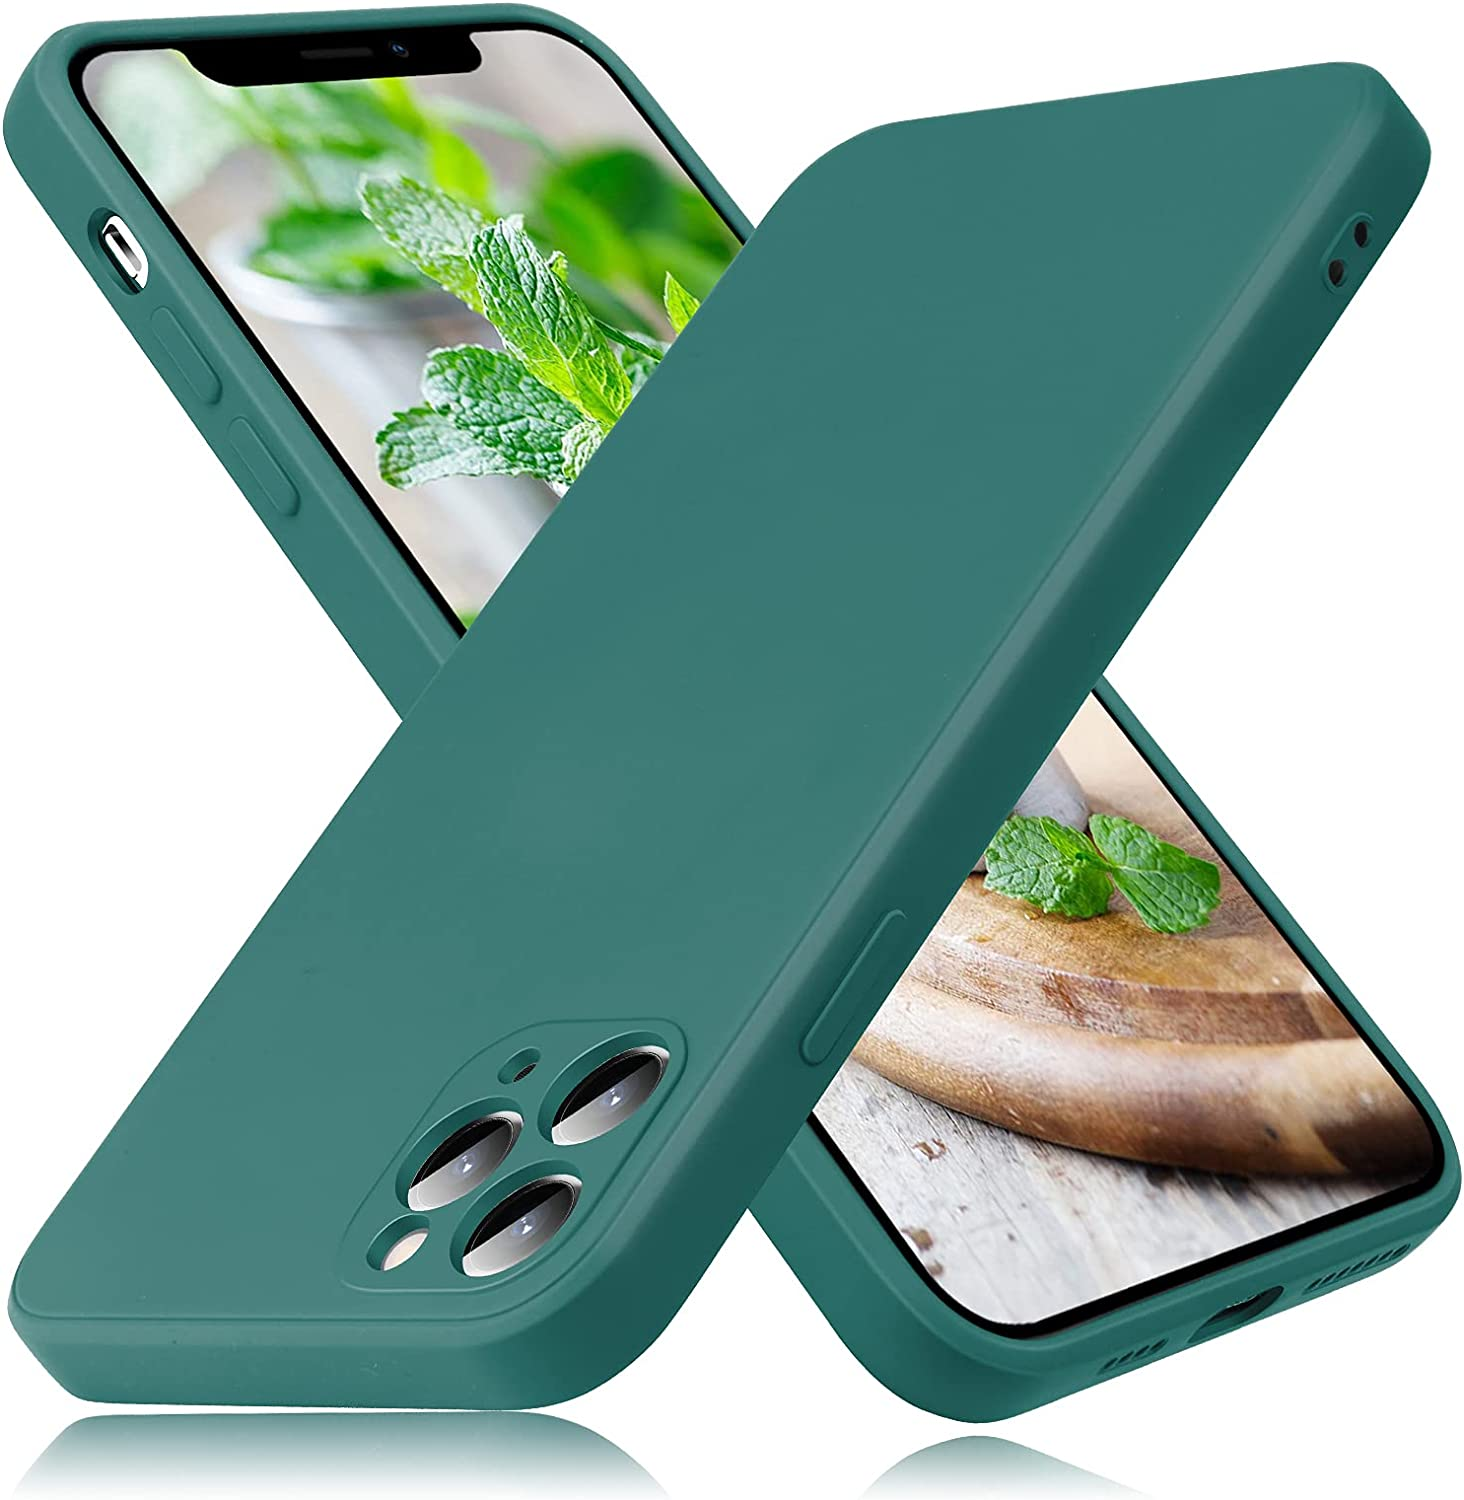 Peafowl Compatible with iPhone 11 Pro Max Case, Soft Liquid Silicone Full-Body Protective Case for iPhone 11 Pro Max(Dark Green)